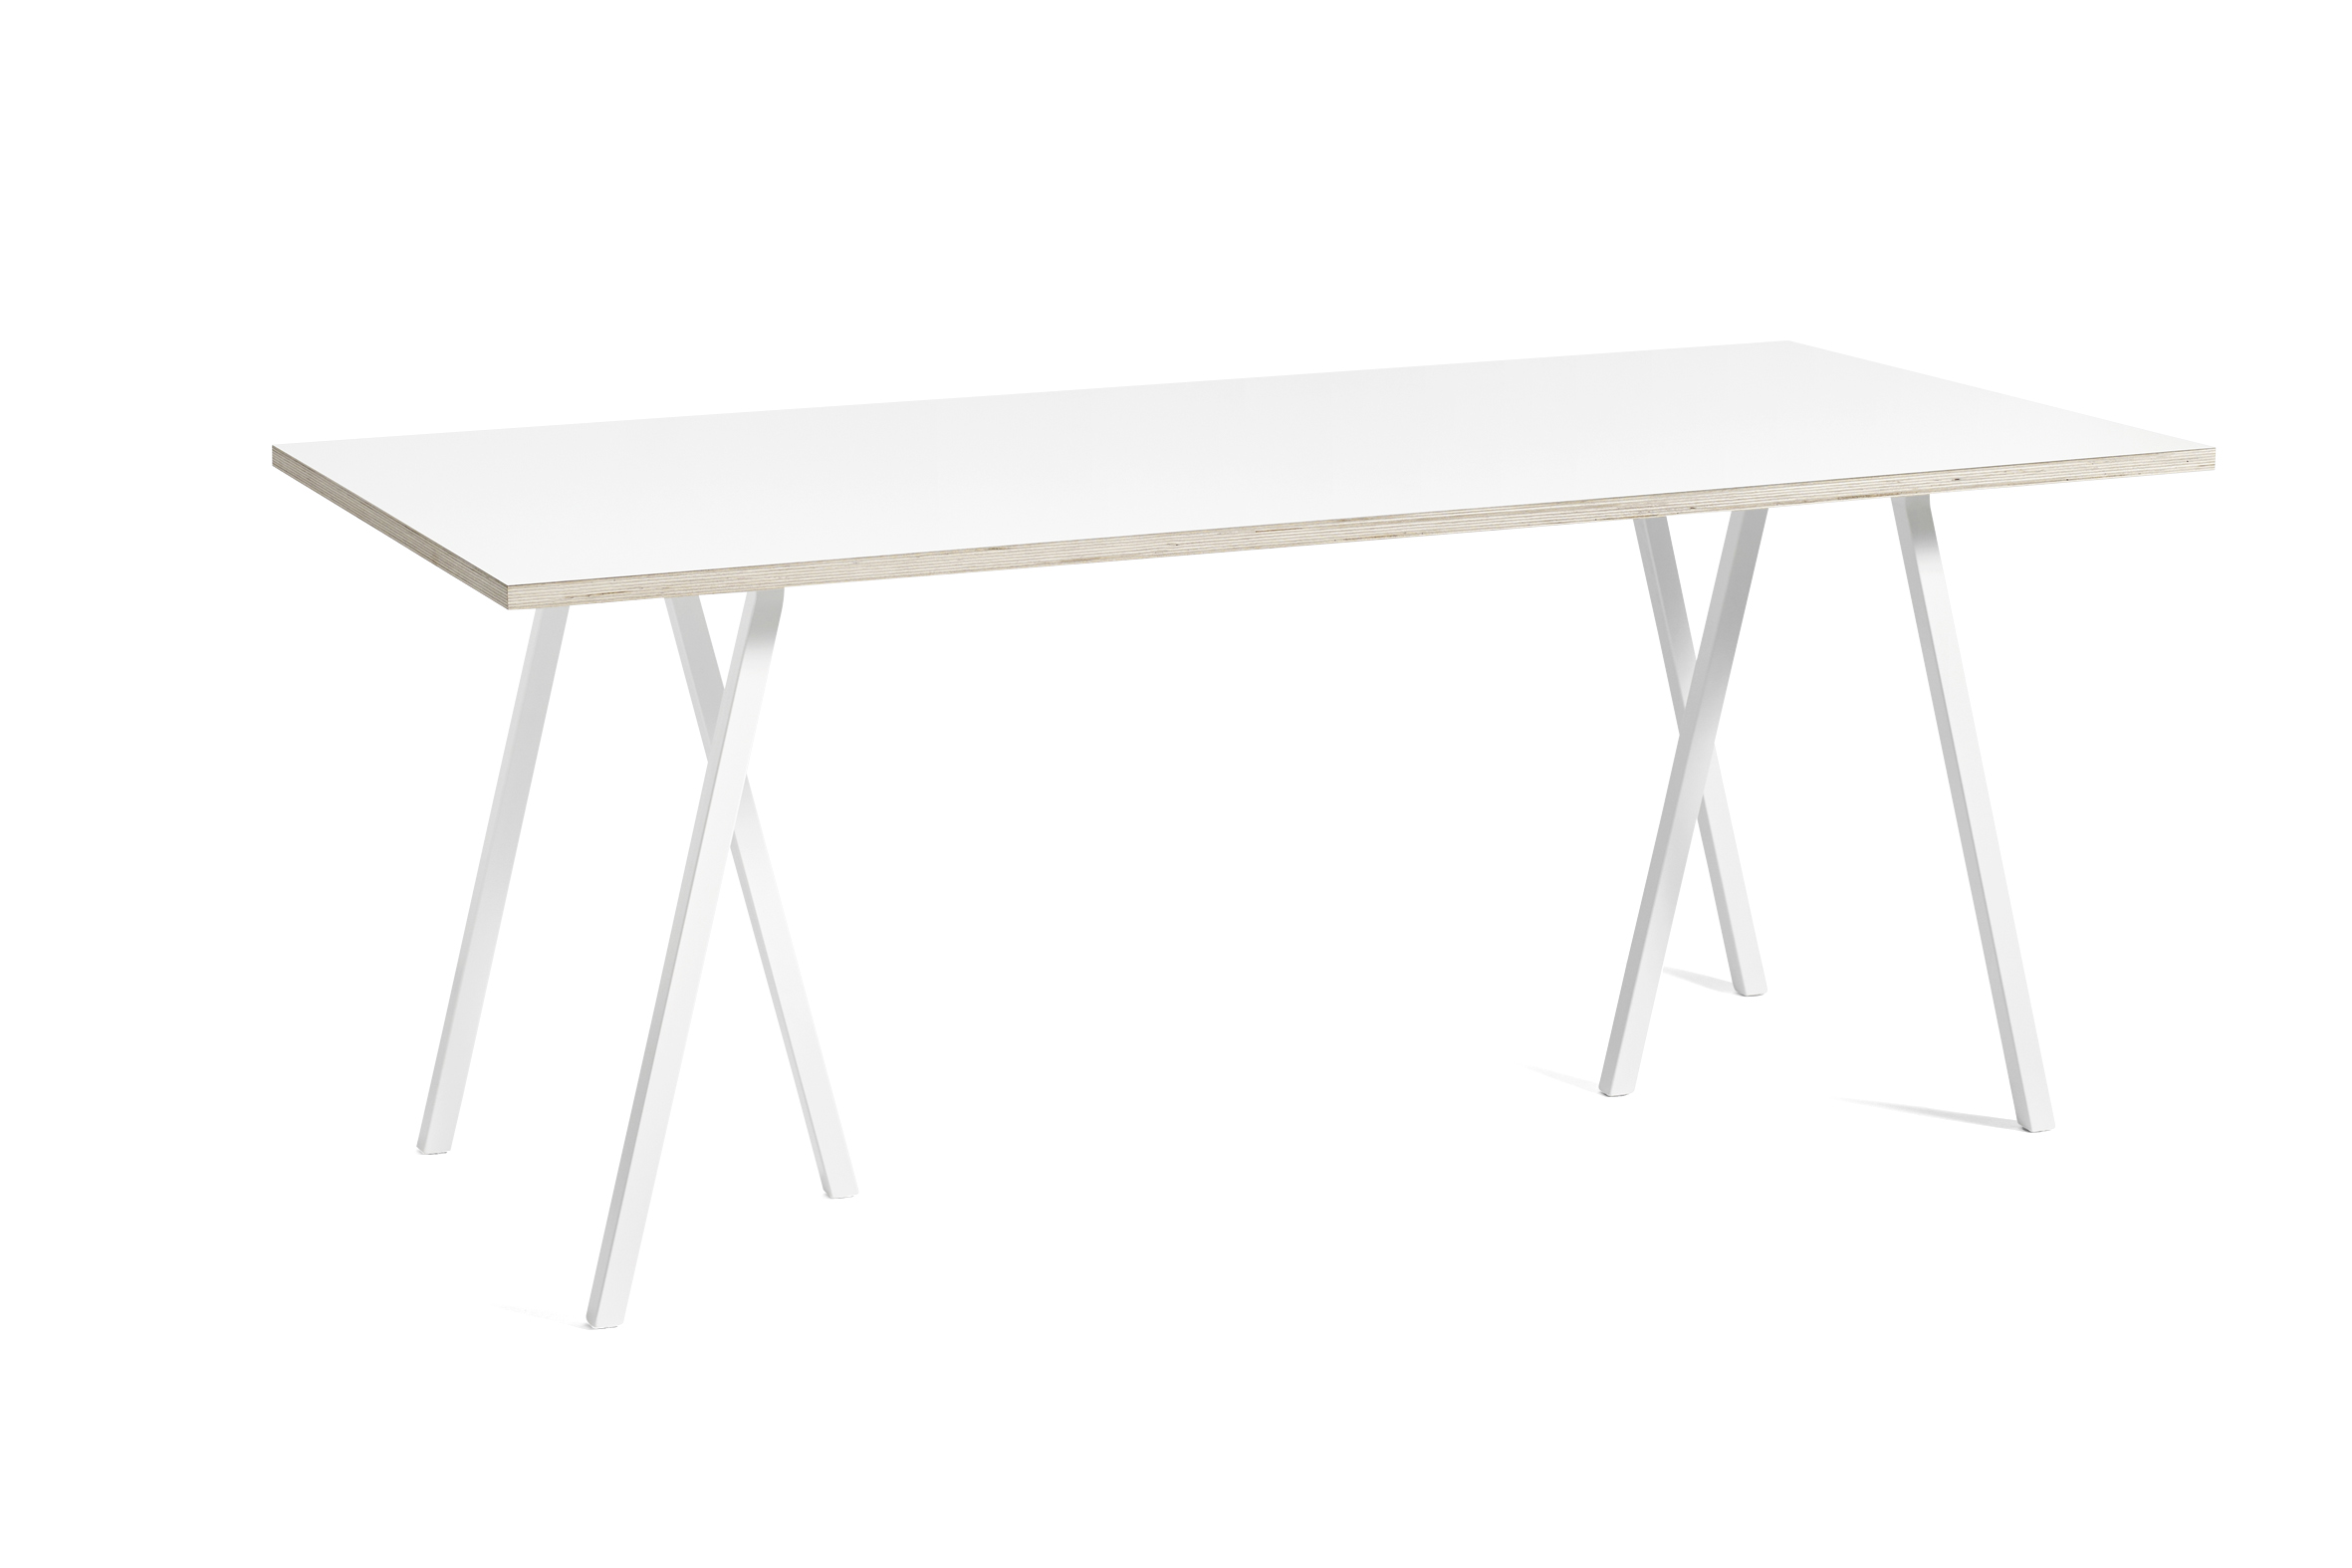 Loop stand table white laminate 180 cm